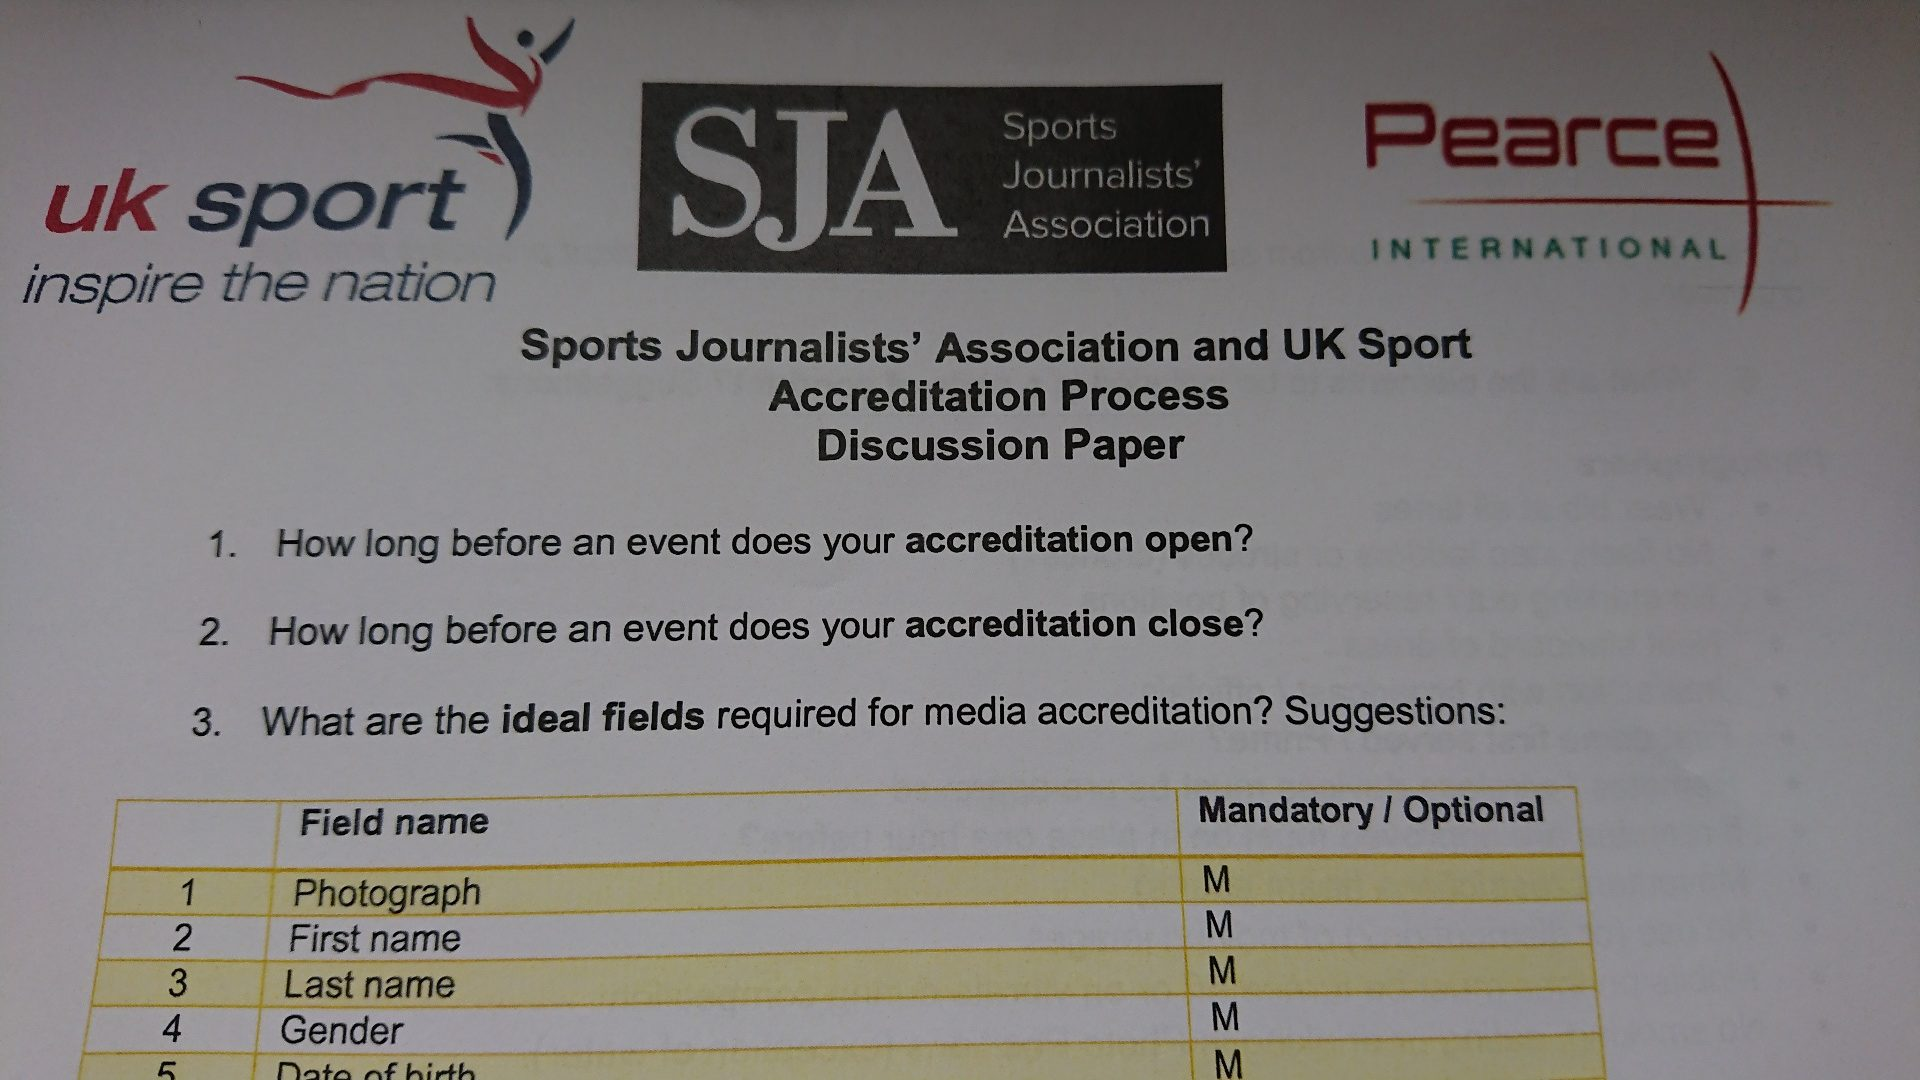 Photographers top agenda at ground-breaking SJA/UK Sport accreditation seminar